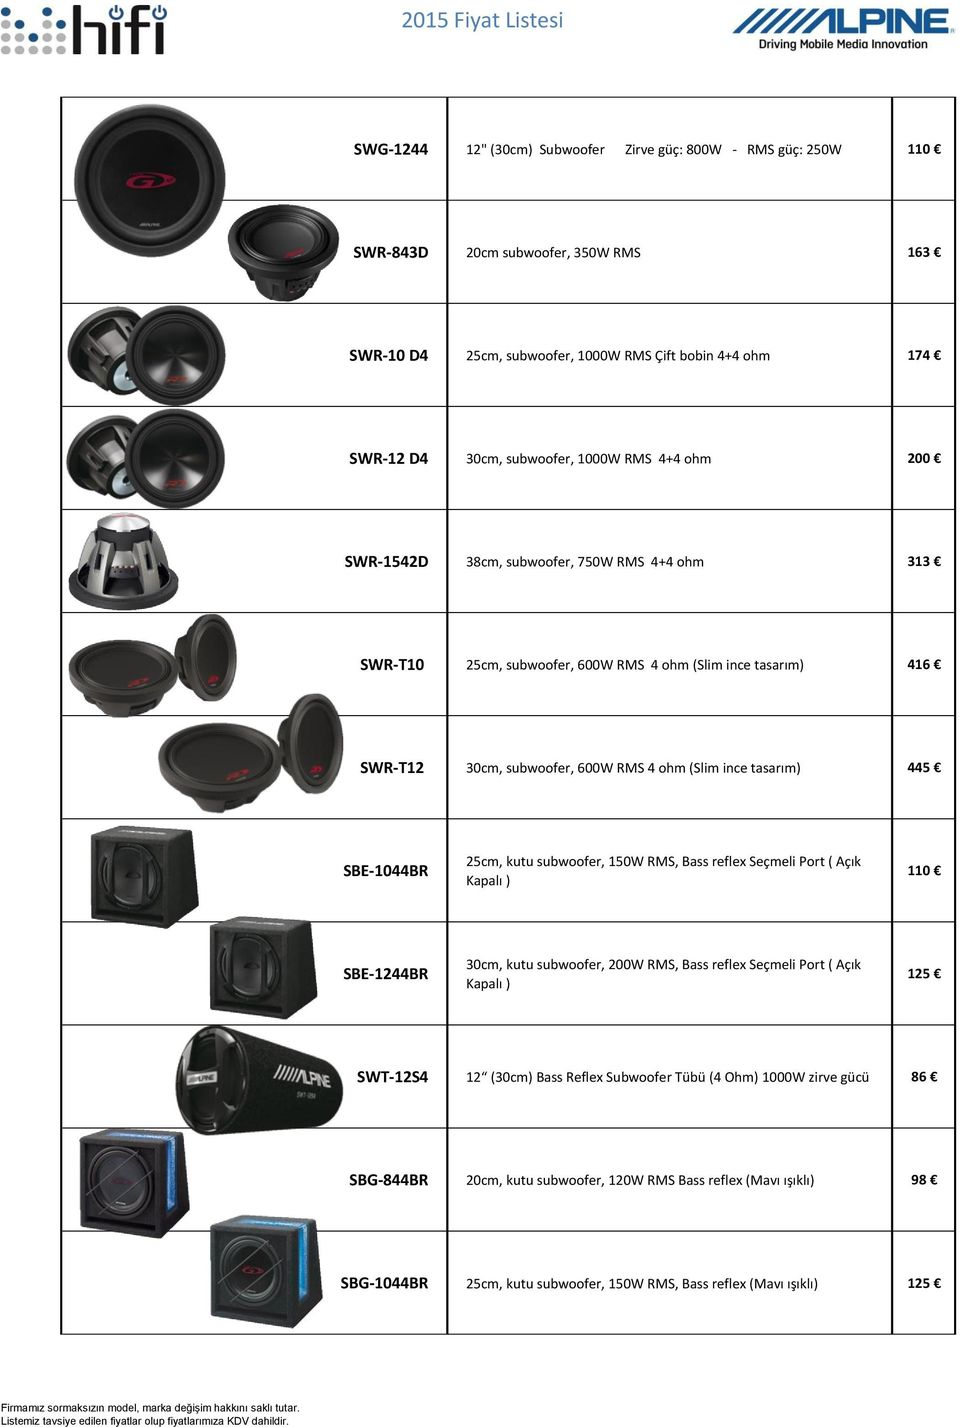 445 SBE-1044BR 25cm, kutu subwoofer, 150W RMS, Bass reflex Seçmeli Port ( Açık Kapalı ) 110 SBE-1244BR 30cm, kutu subwoofer, 200W RMS, Bass reflex Seçmeli Port ( Açık Kapalı ) 125 SWT-12S4 12